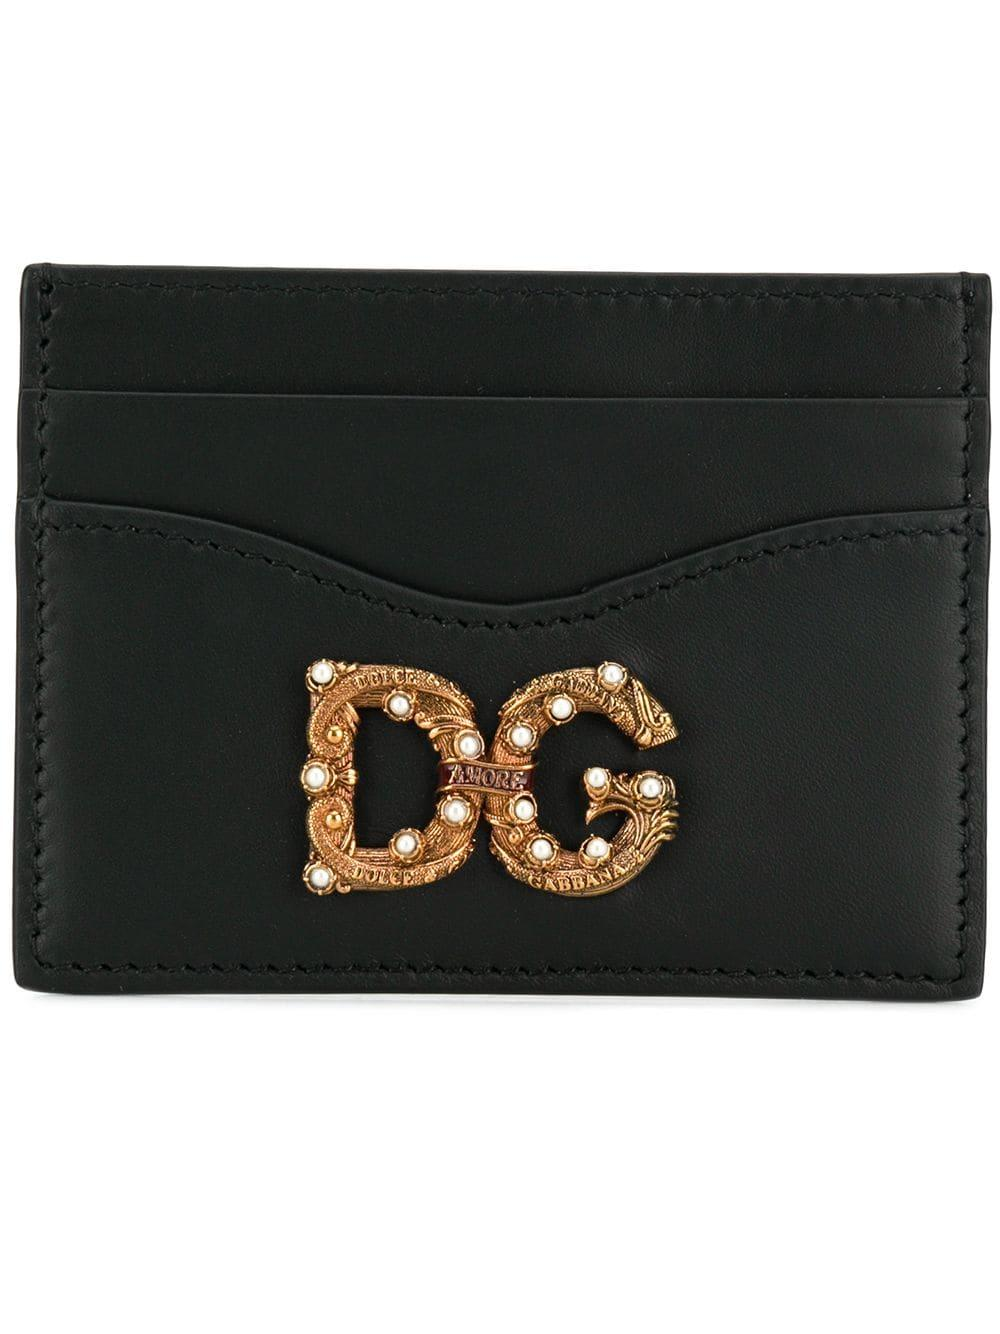 a73feb6ef41 Lyst - Dolce   Gabbana Dg Cardholder in Black - Save 40%